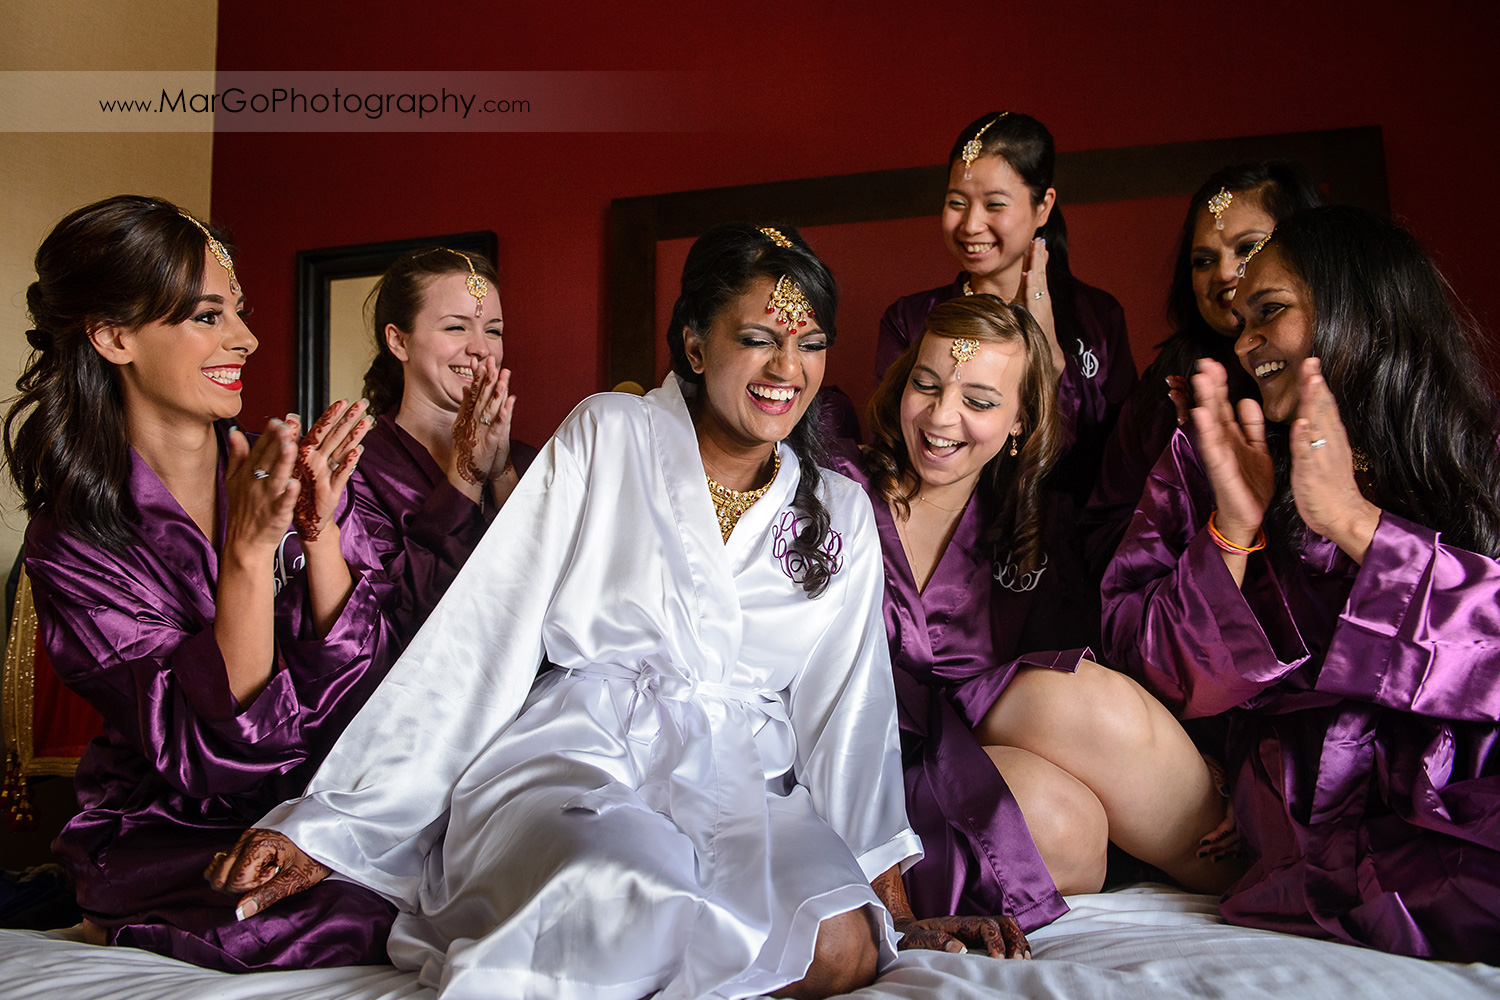 indian bride with bridesmaids in robes laughing at Hotel Shattuck Plaza in Berkeley